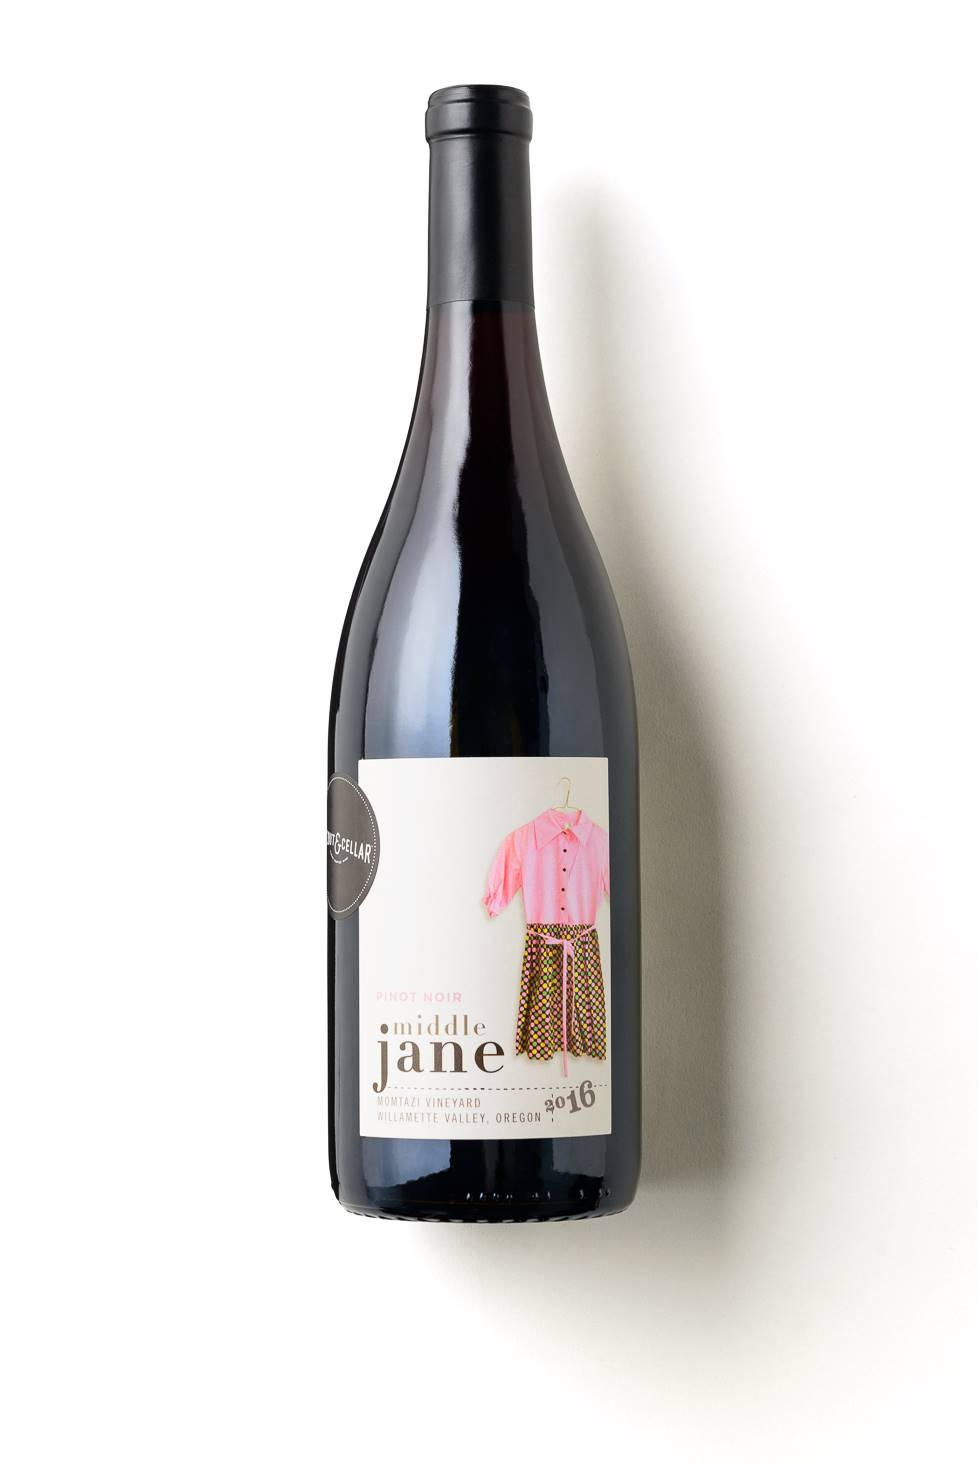 2015 Middle Jane Pinot Noir